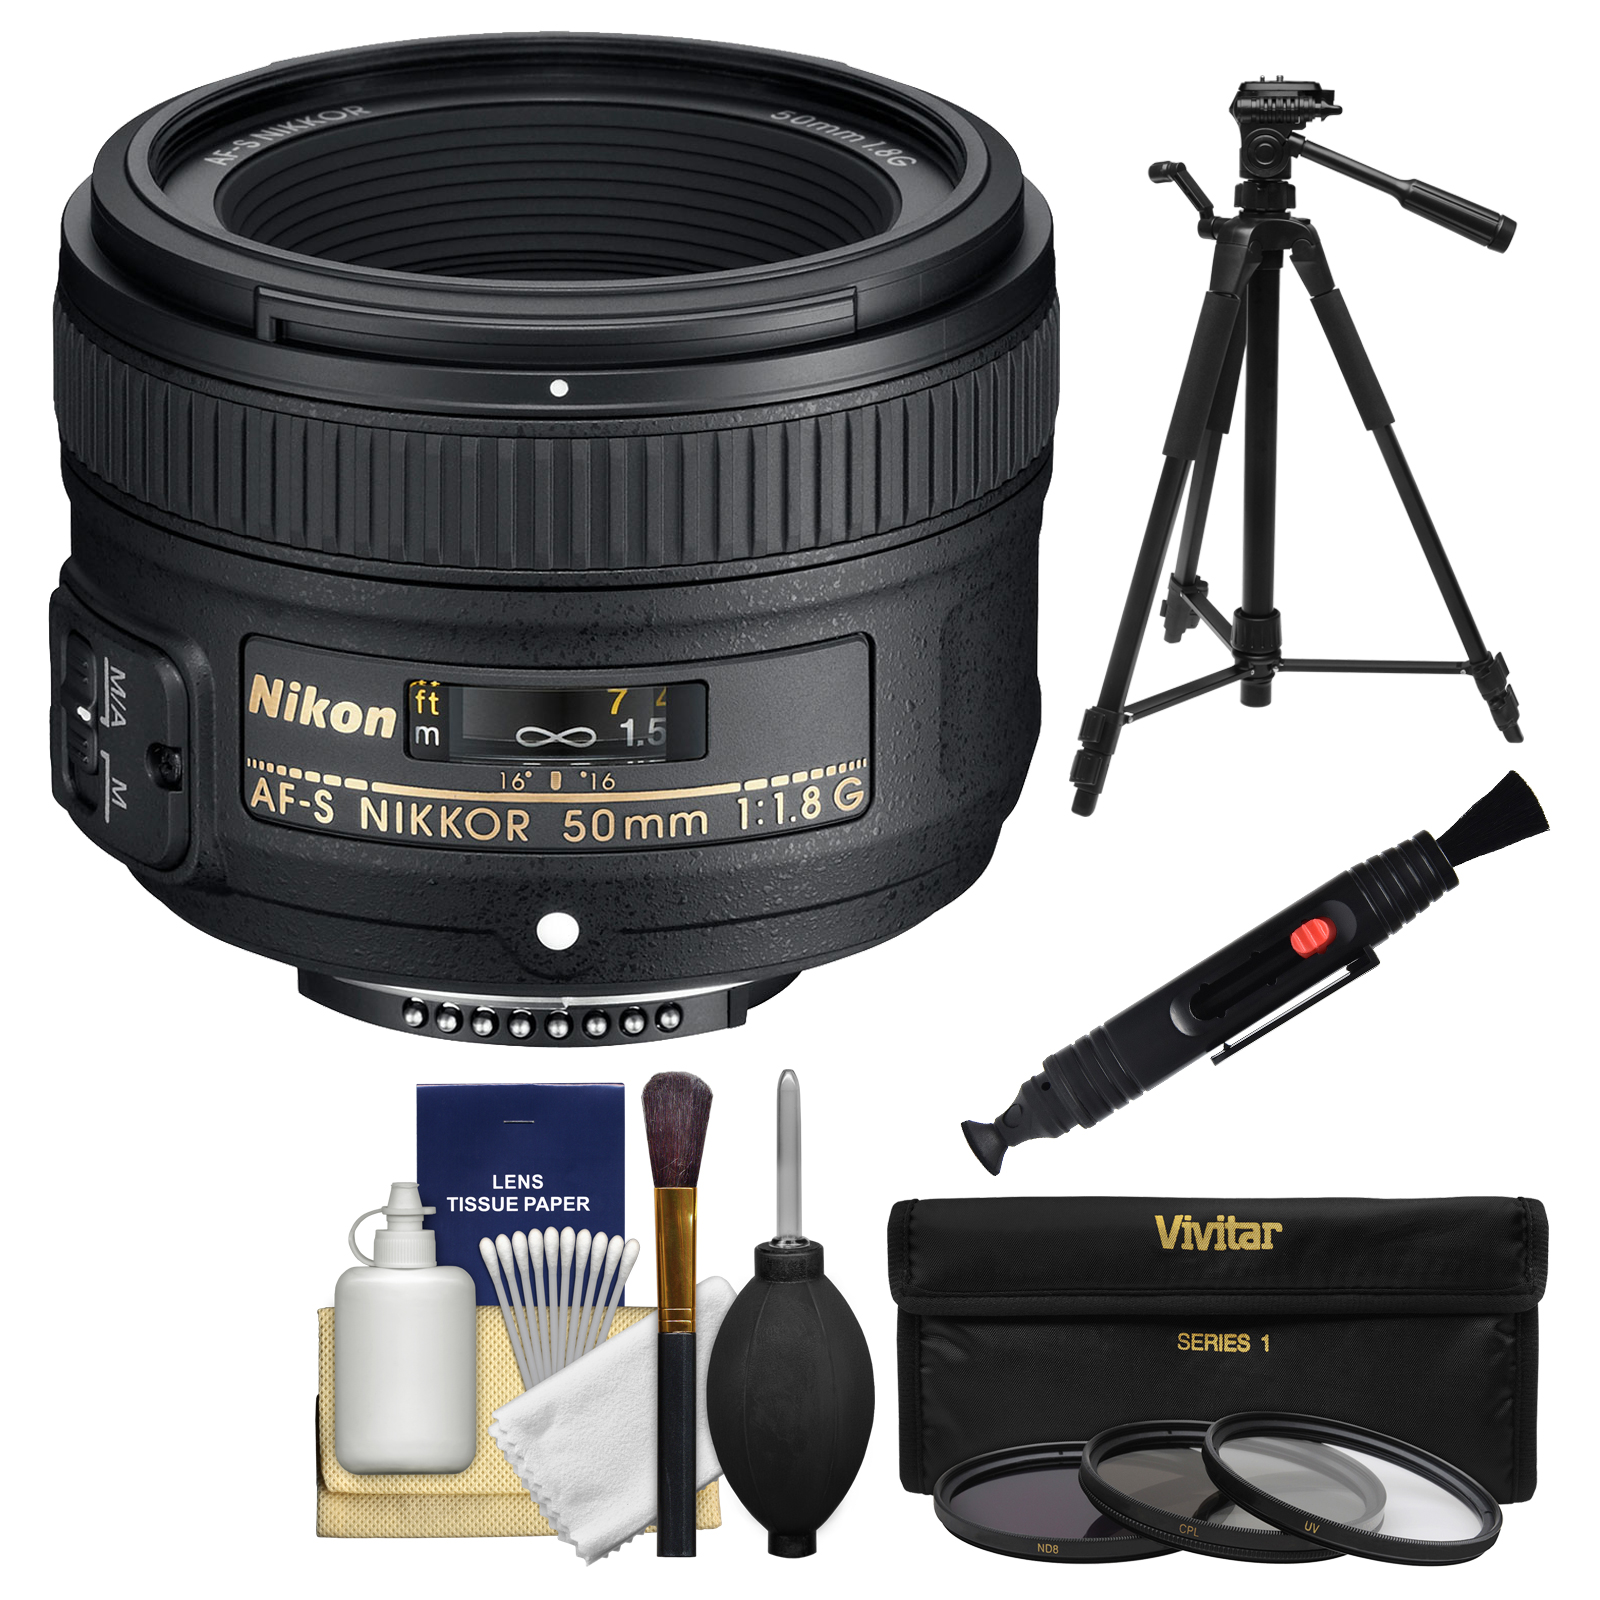 Nikon 50mm f/1.8G AF-S Nikkor Lens - Factory Refurbished with 3 UV/CPL/ND8 Filters + Tripod + Kit